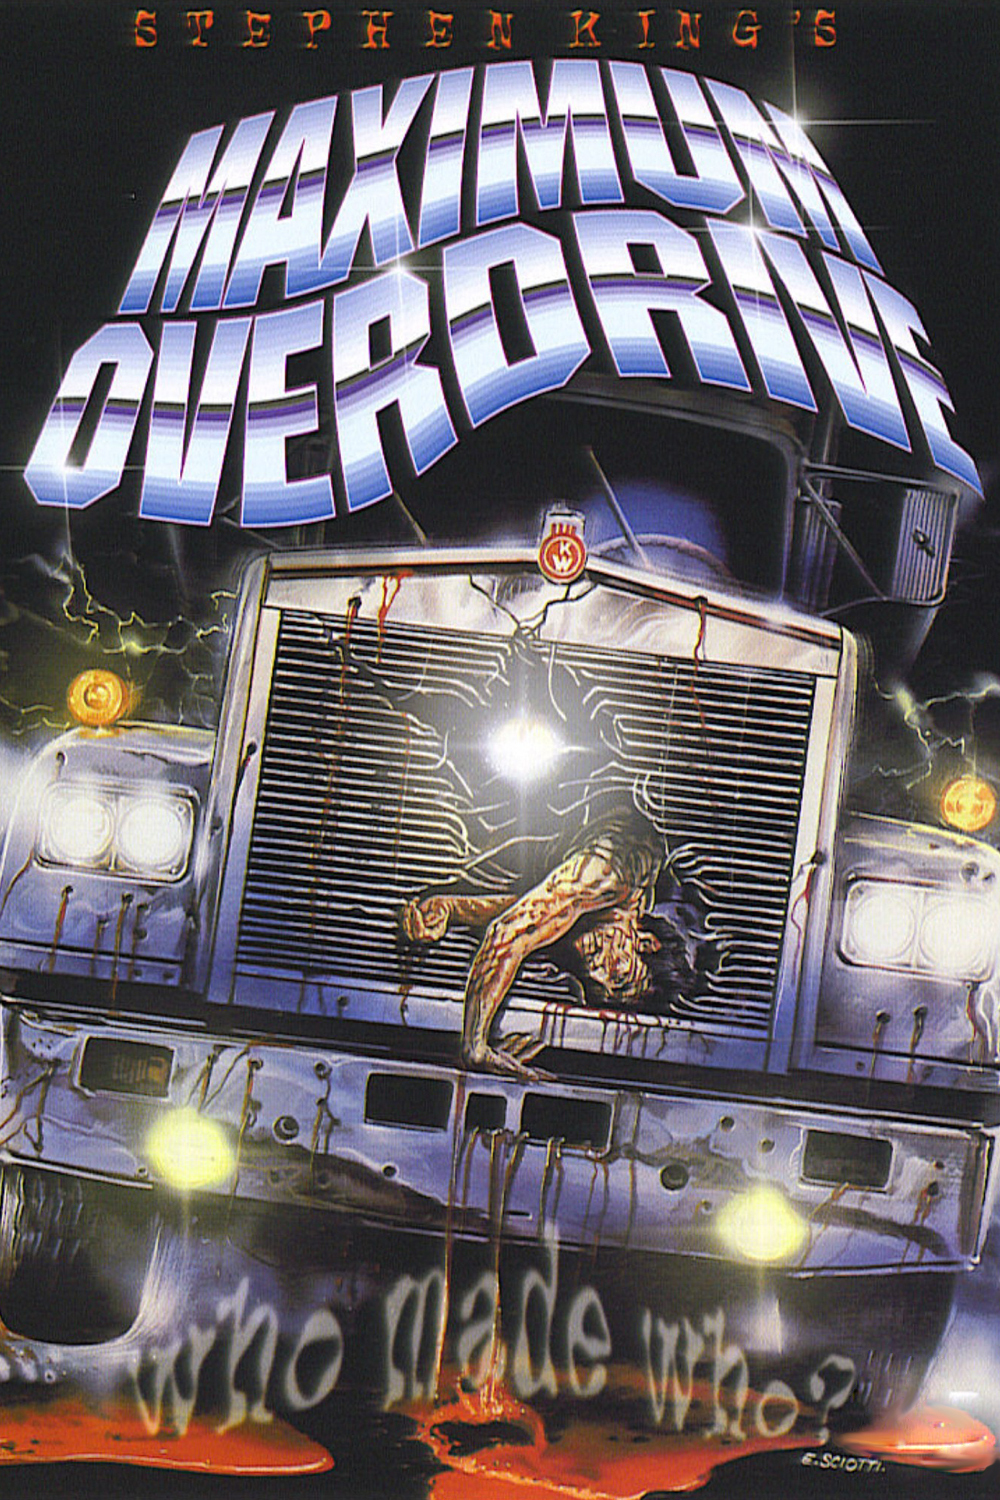 Icarus File No 2 Maximum Overdrive dir by Steven King